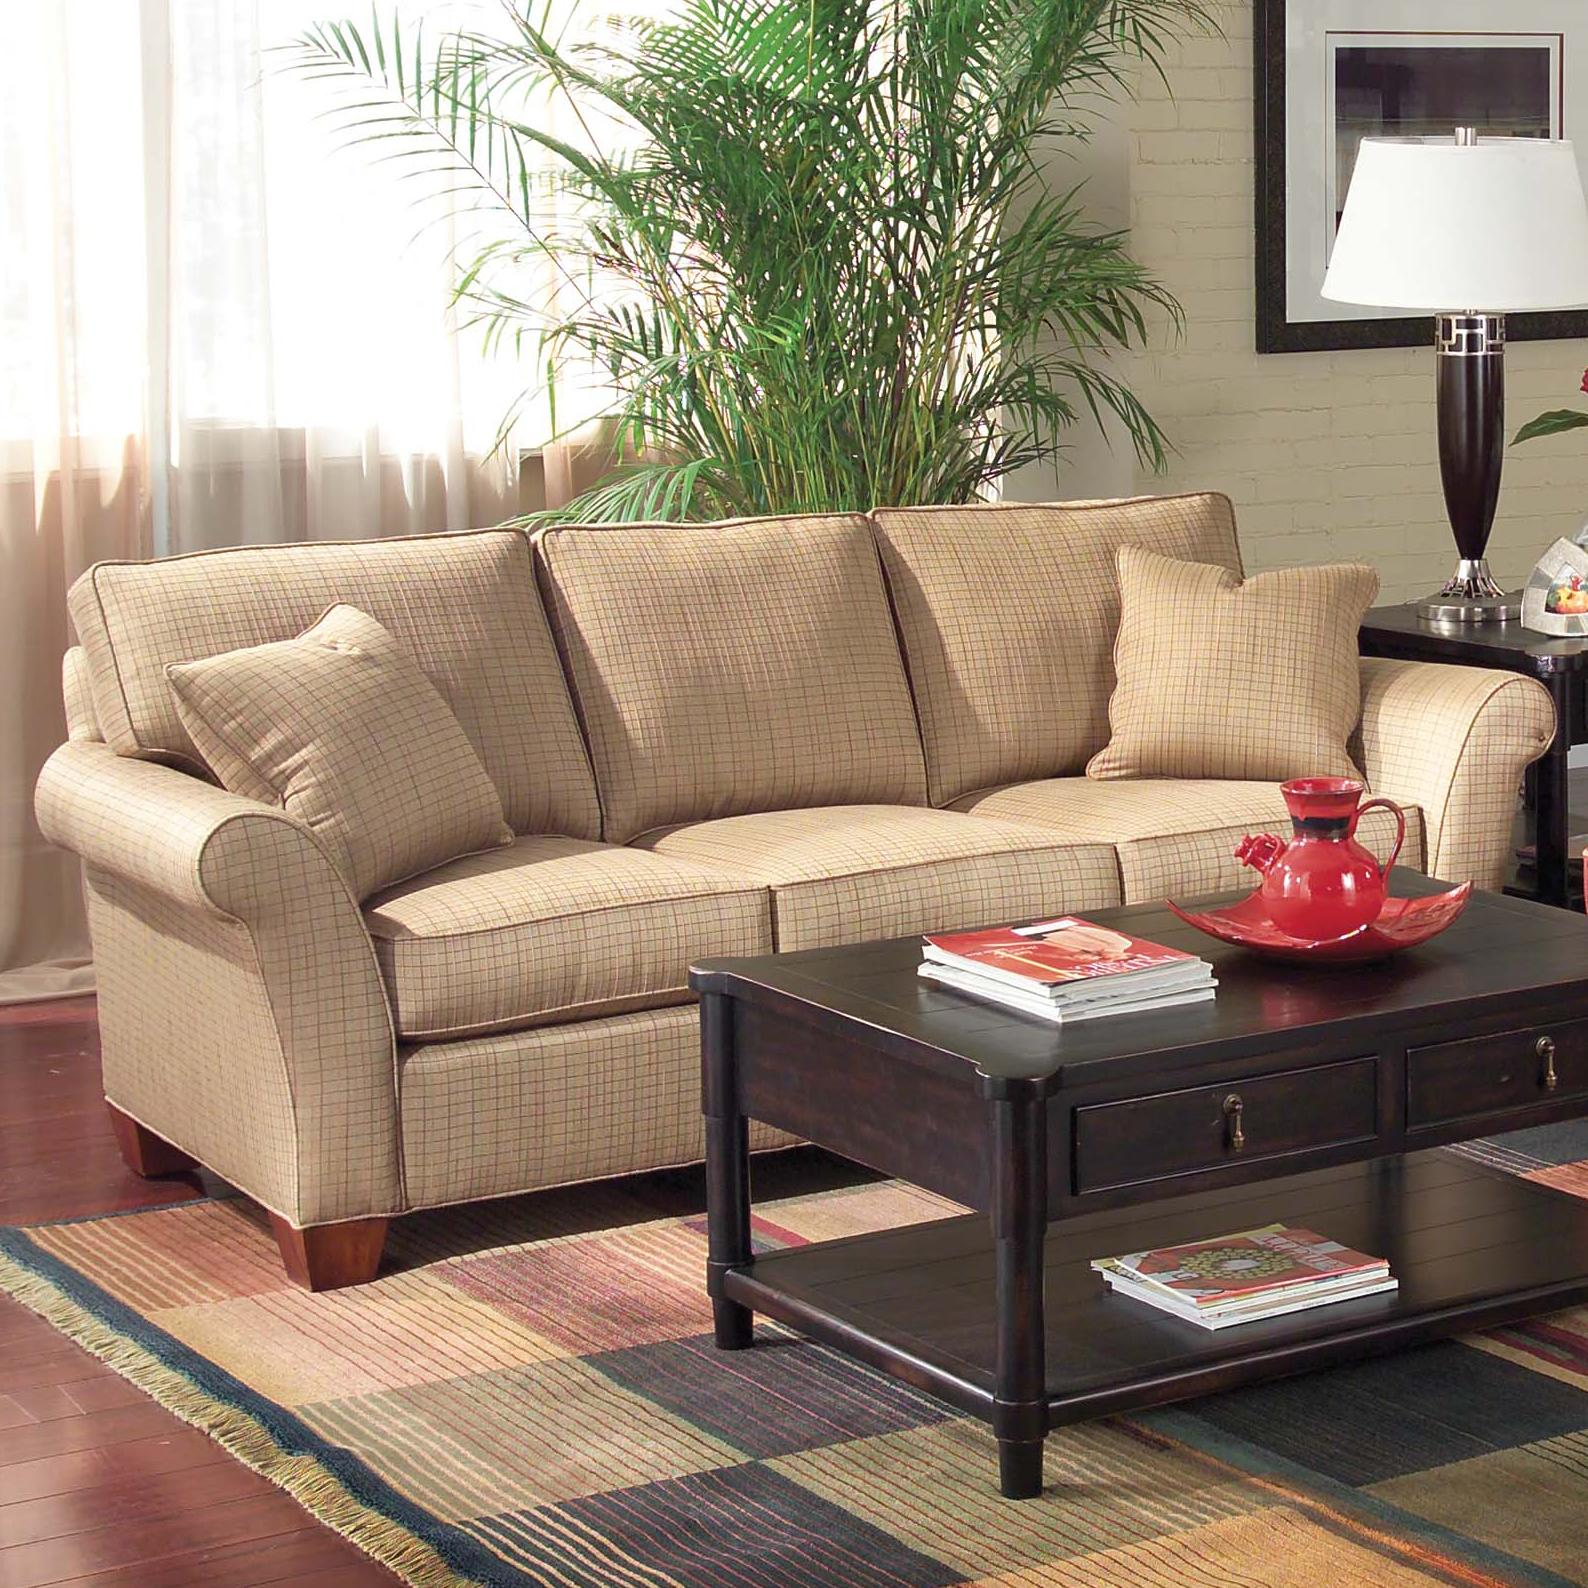 Sofa Accents Flair-Arm Sofa by Fairfield at Belfort Furniture